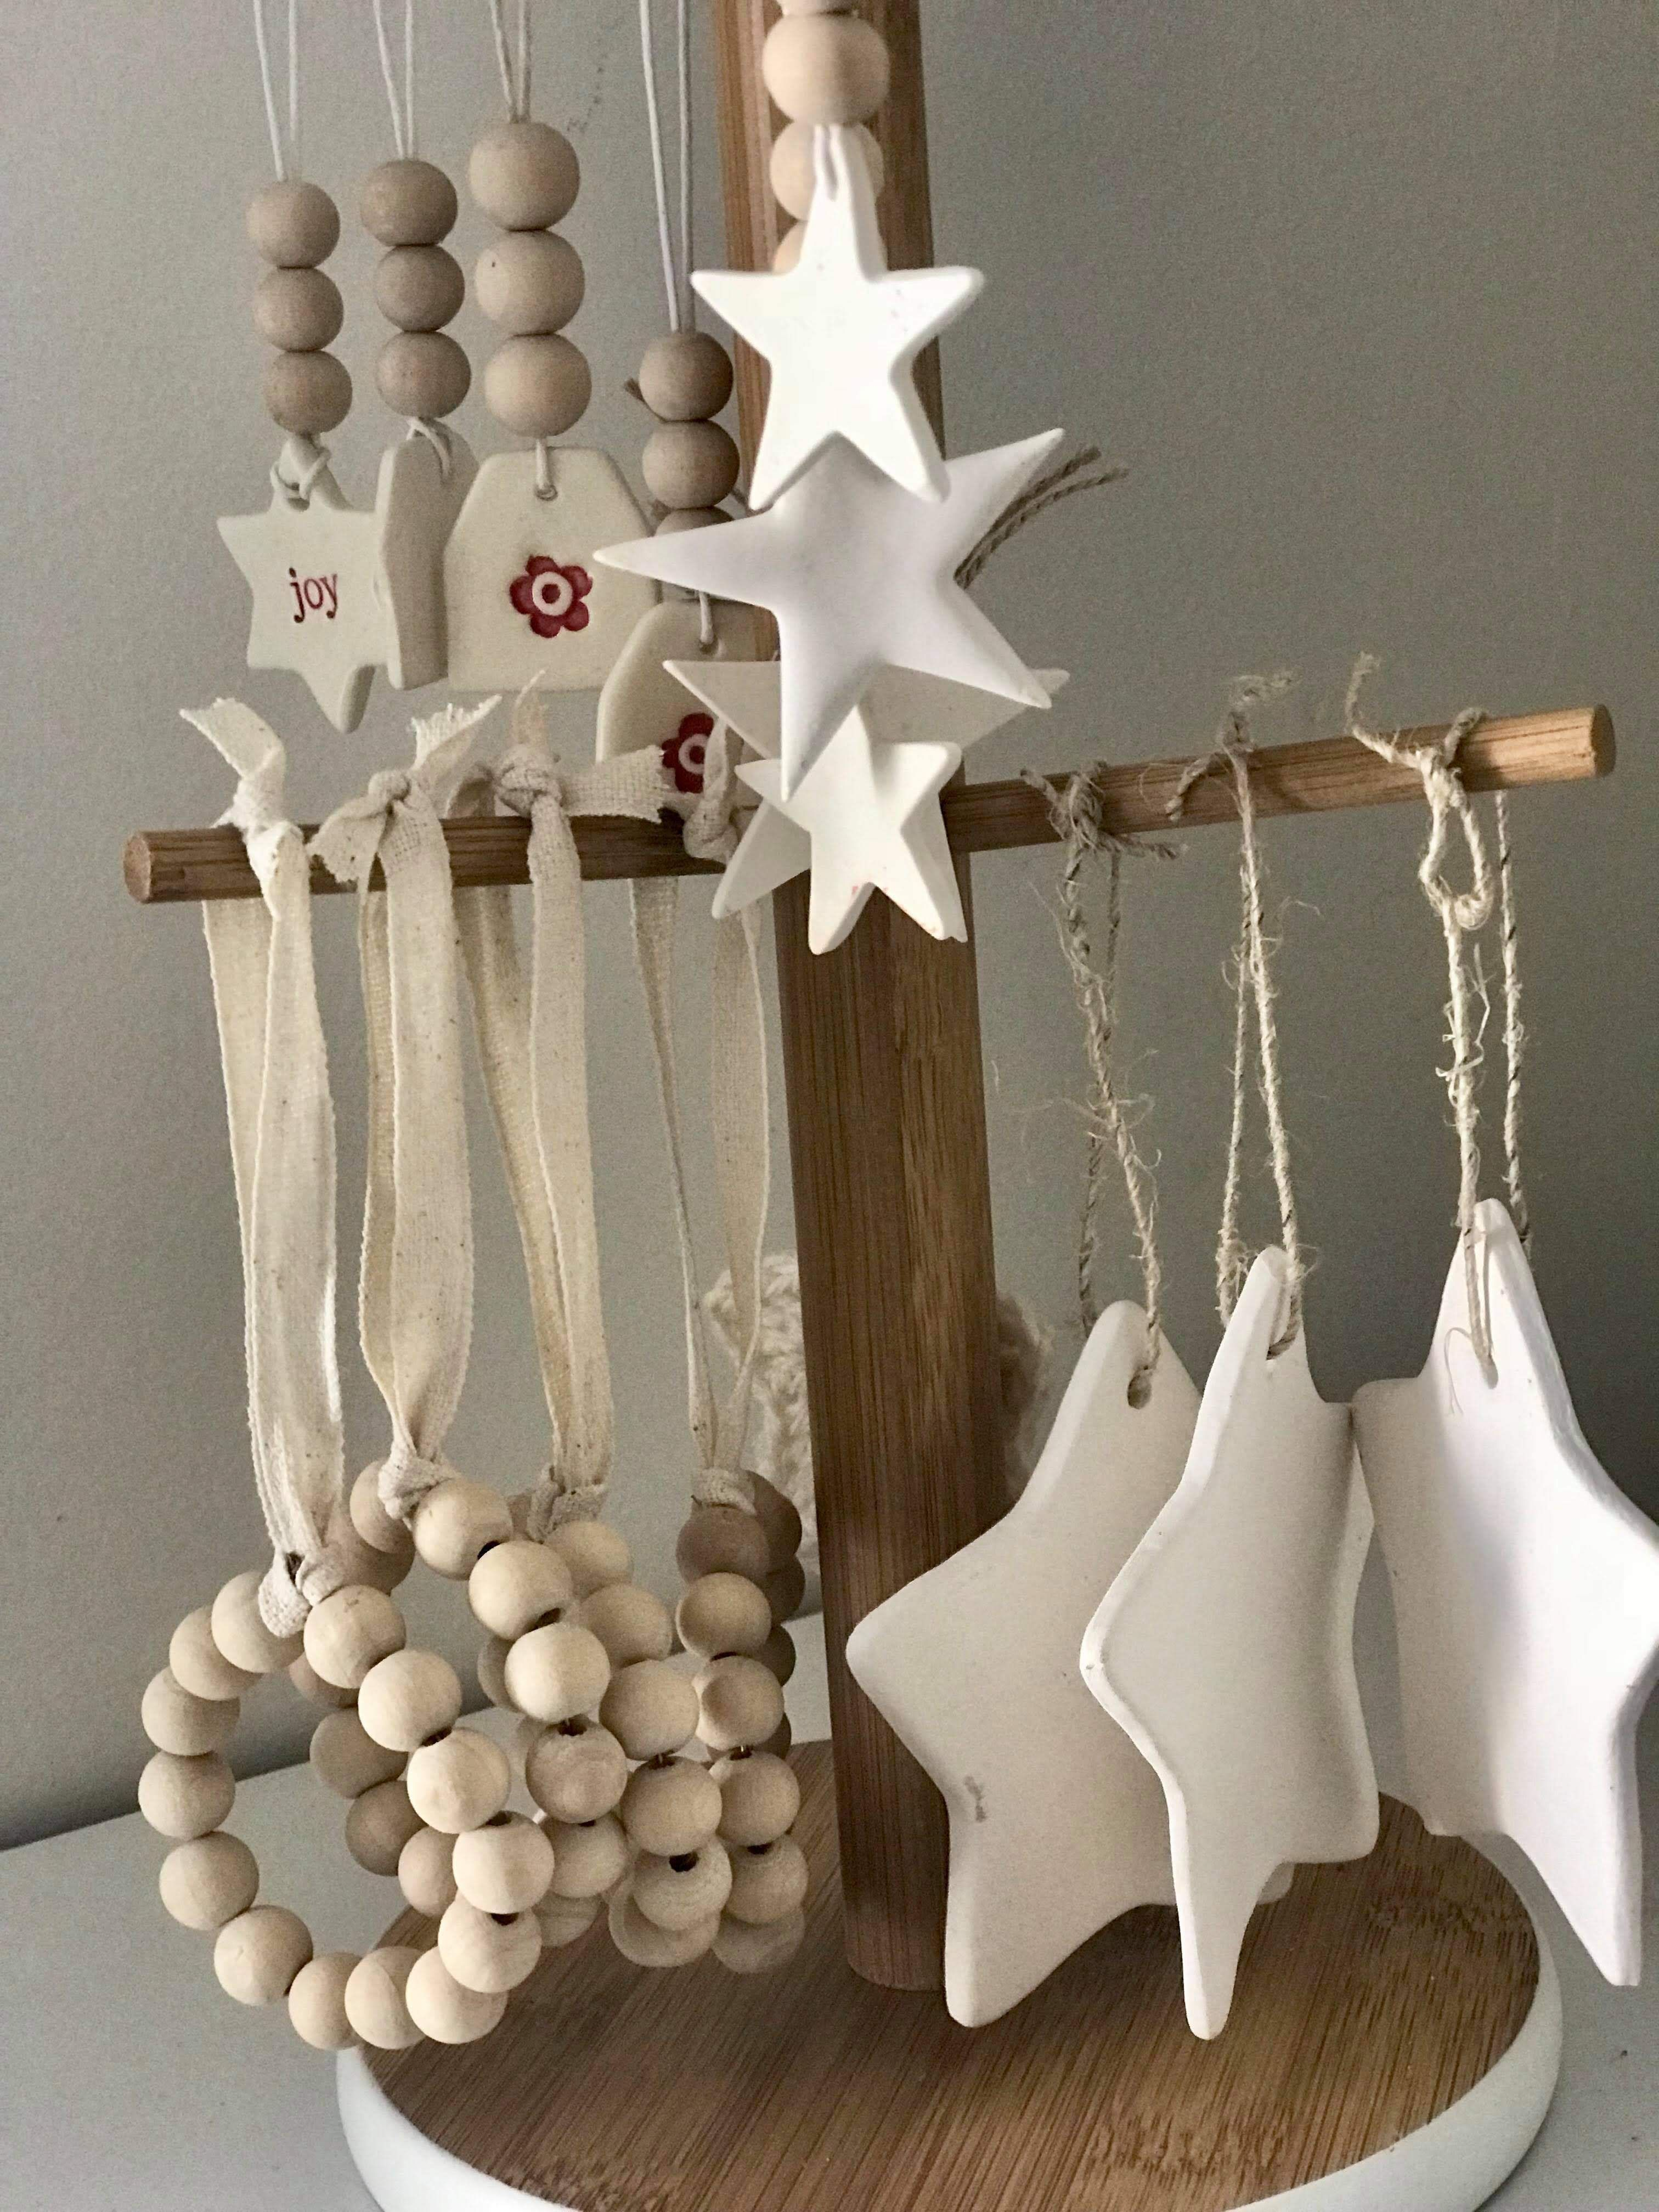 Wooden bead and clay Christmas decorations #diychristmasornaments